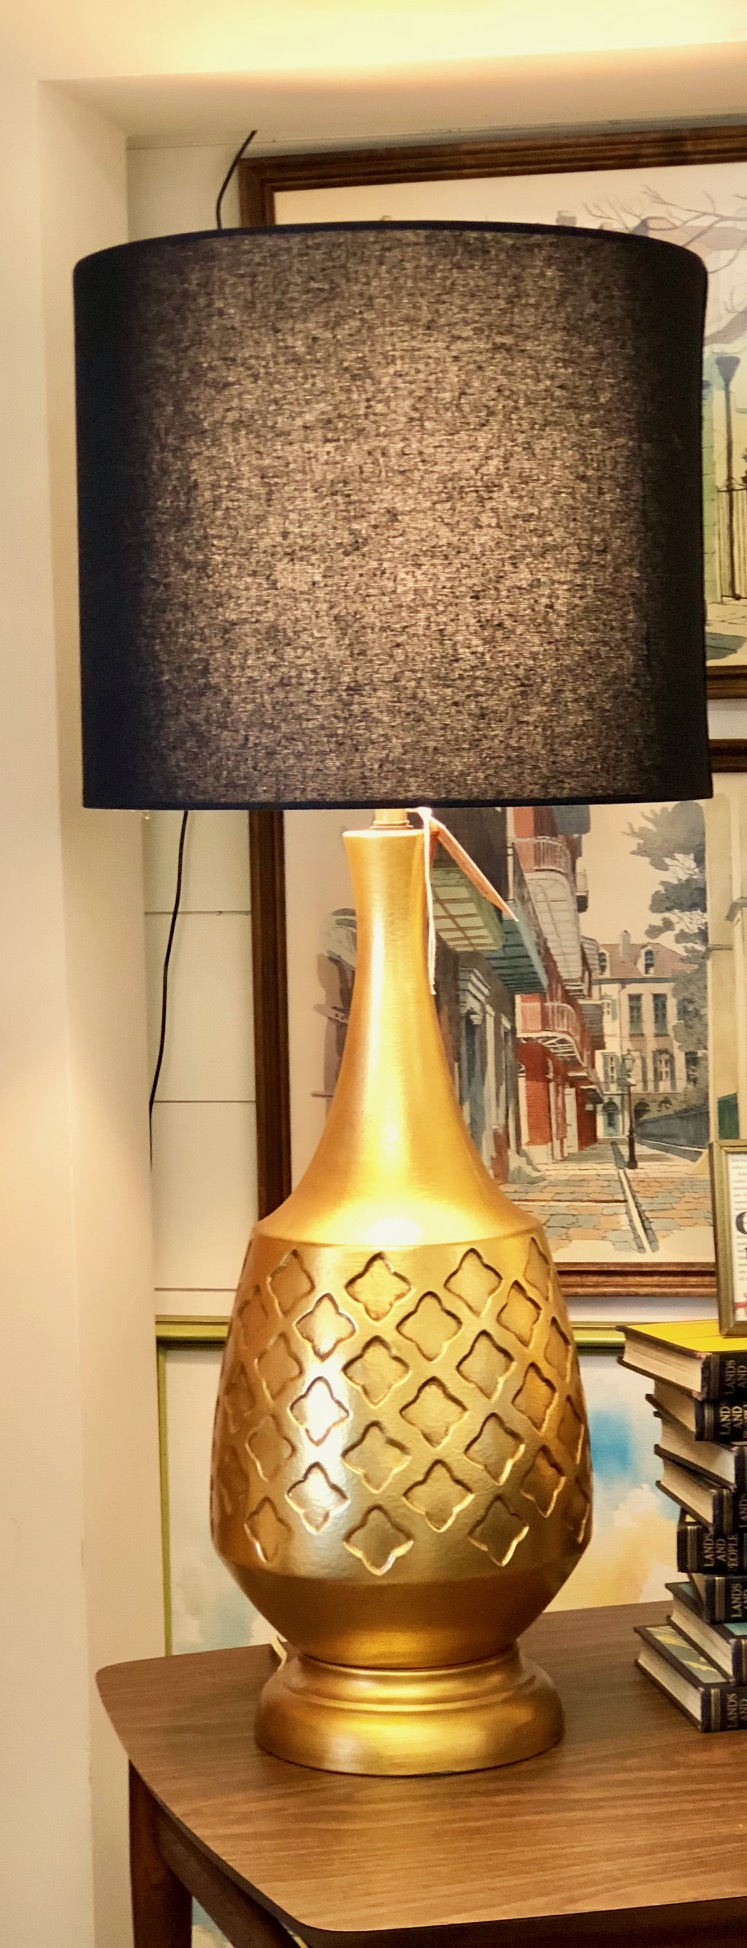 Combine this brilliant lamp with azure accessories for a striking statement.